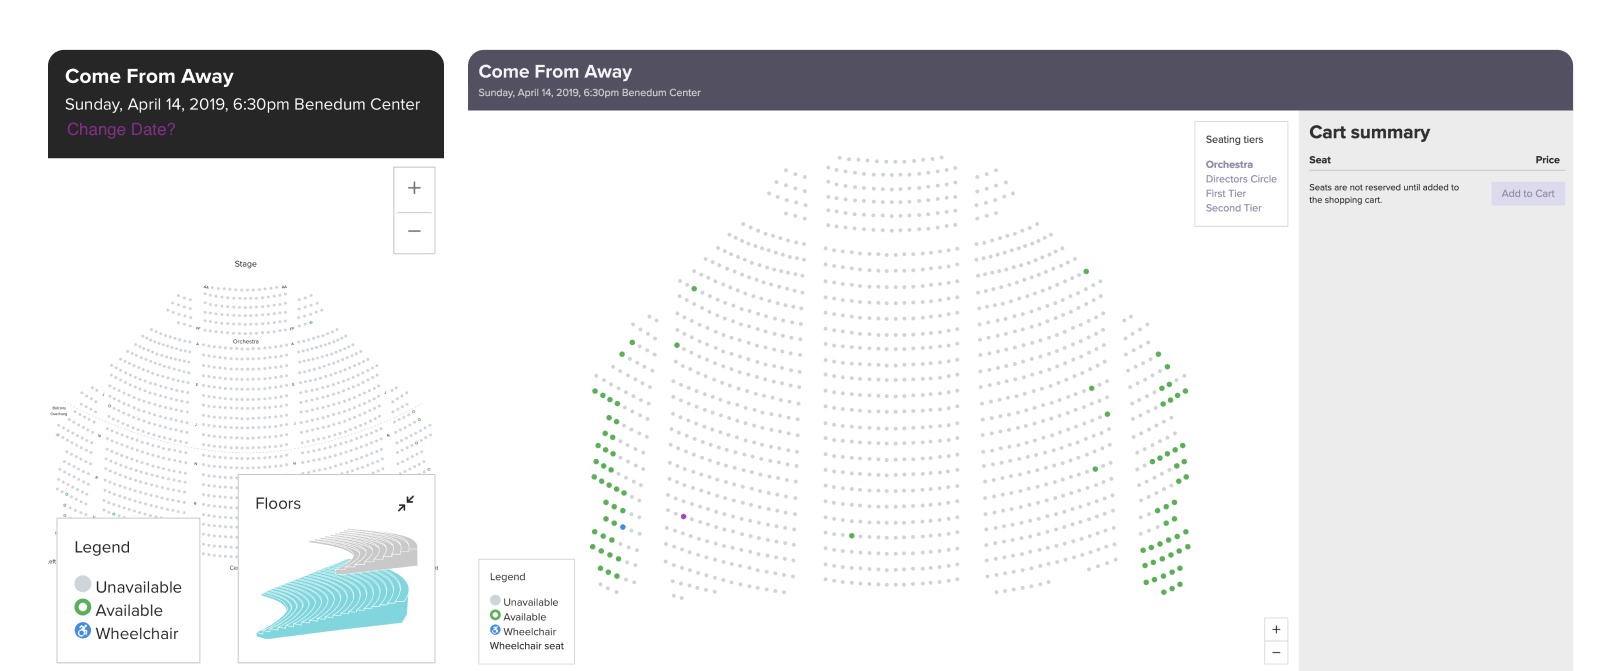 Two screenshots from the ticketing feature on the Pittsburgh Cultural Trust site; the first is a smaller screen showing available seating with a legend and an inset of floor layout, the second is a large screen showing available seating with a cart summary to the right.